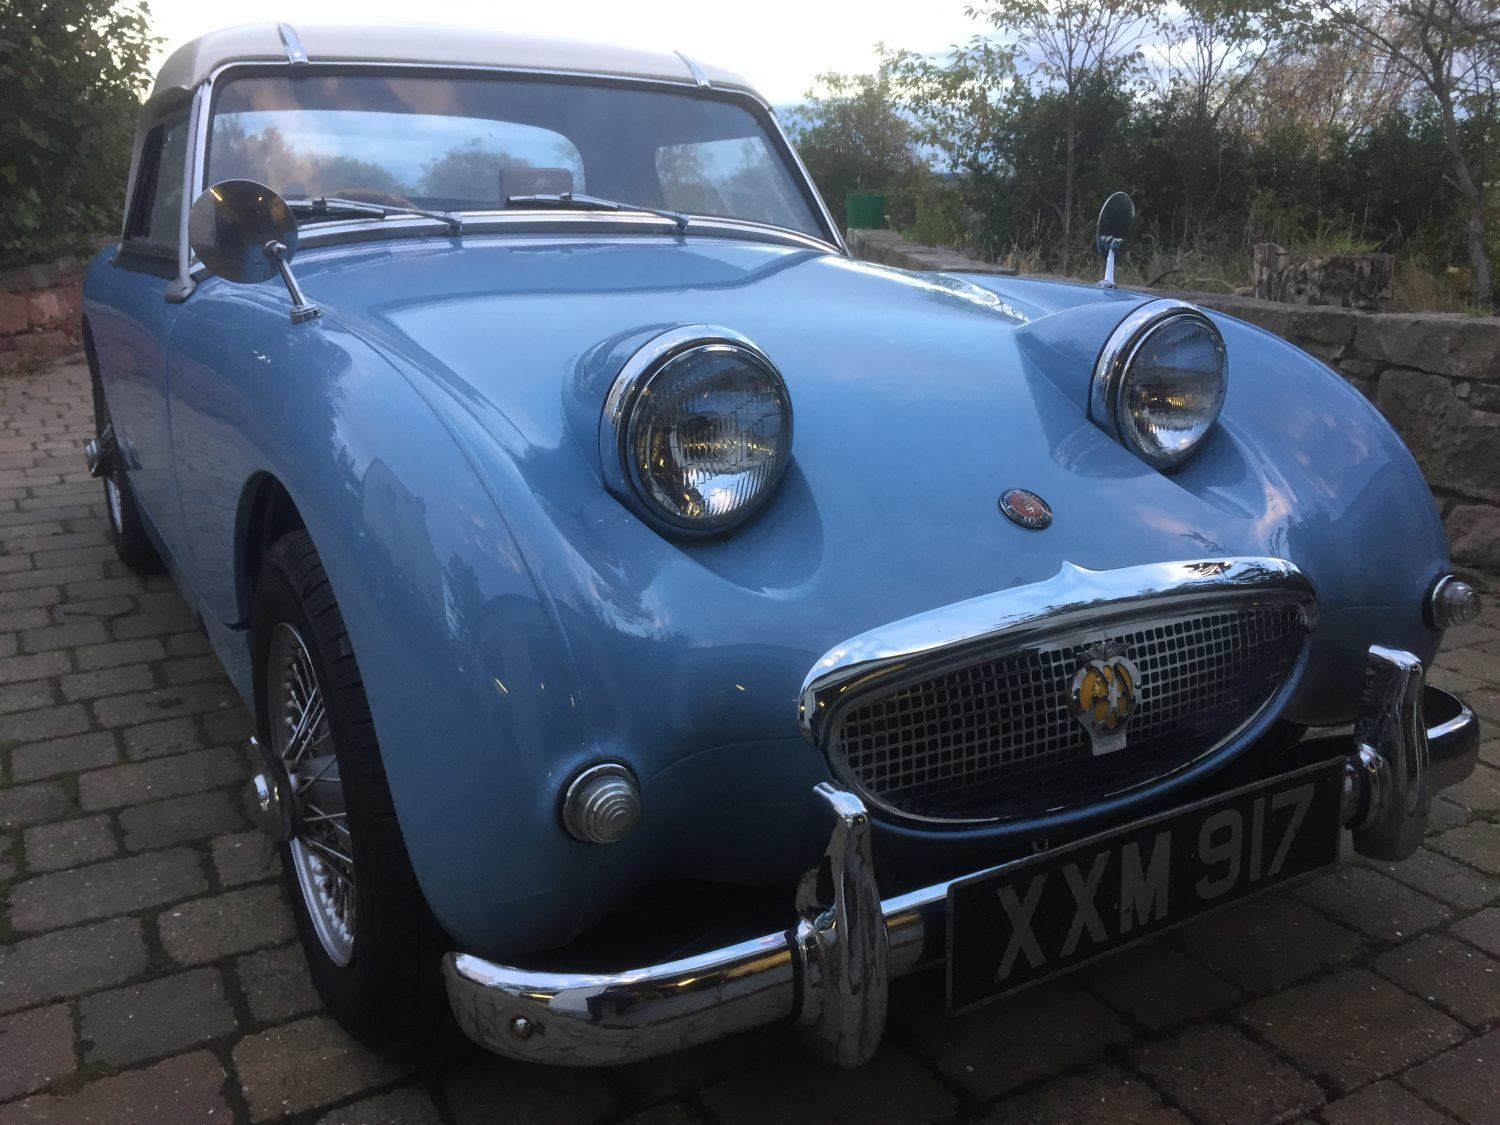 Austin Healey For Sale >> 1959 Austin Healey Frogeye Sprite - Bridge Classic Cars